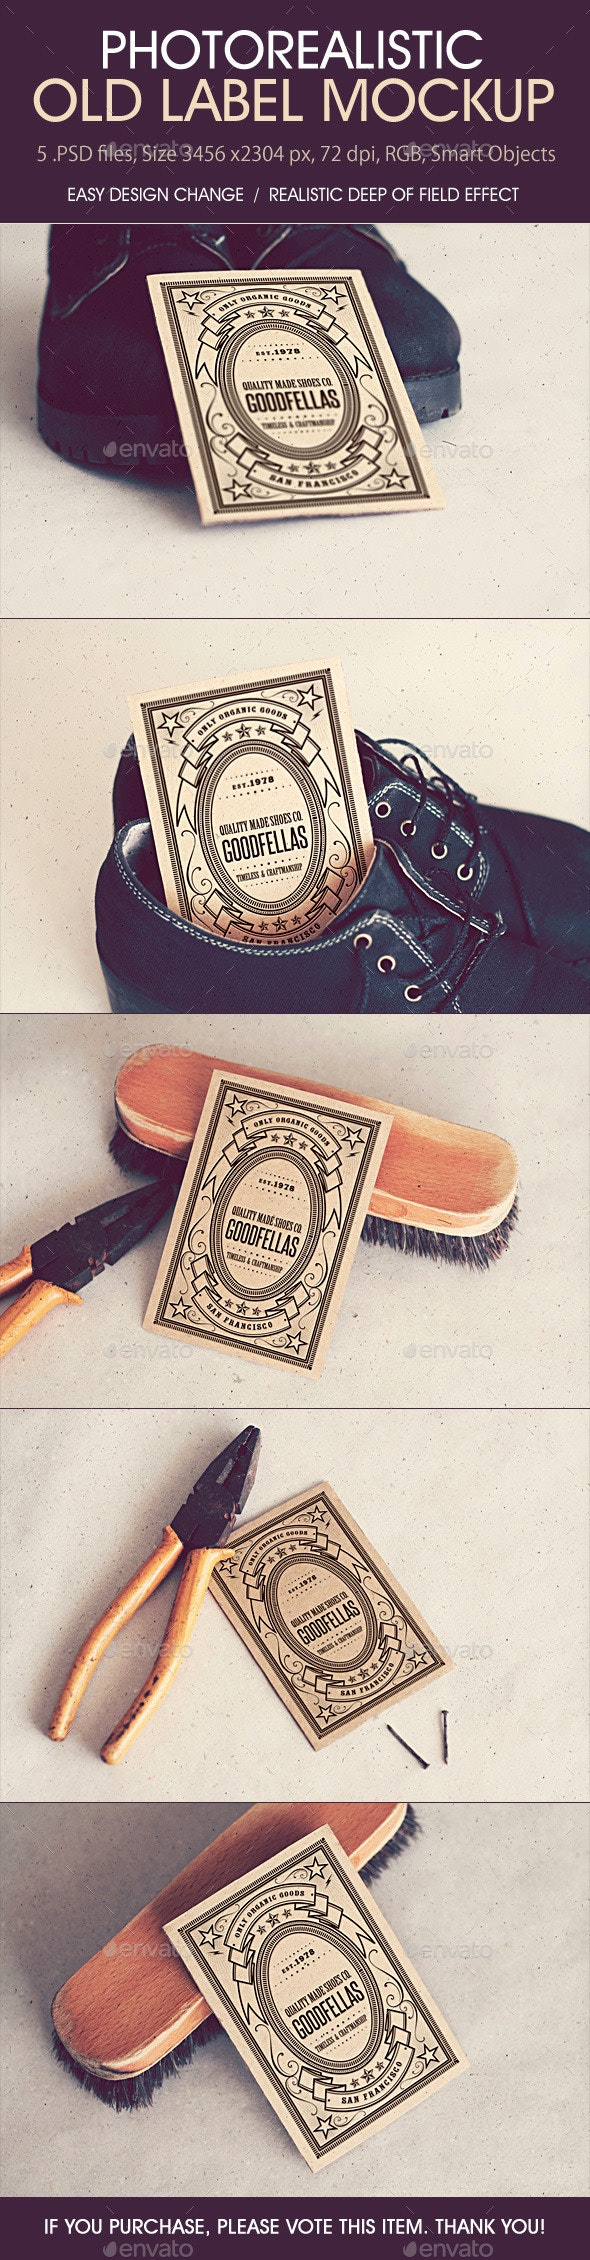 Photorealistic Old Label Mockup - Miscellaneous Print